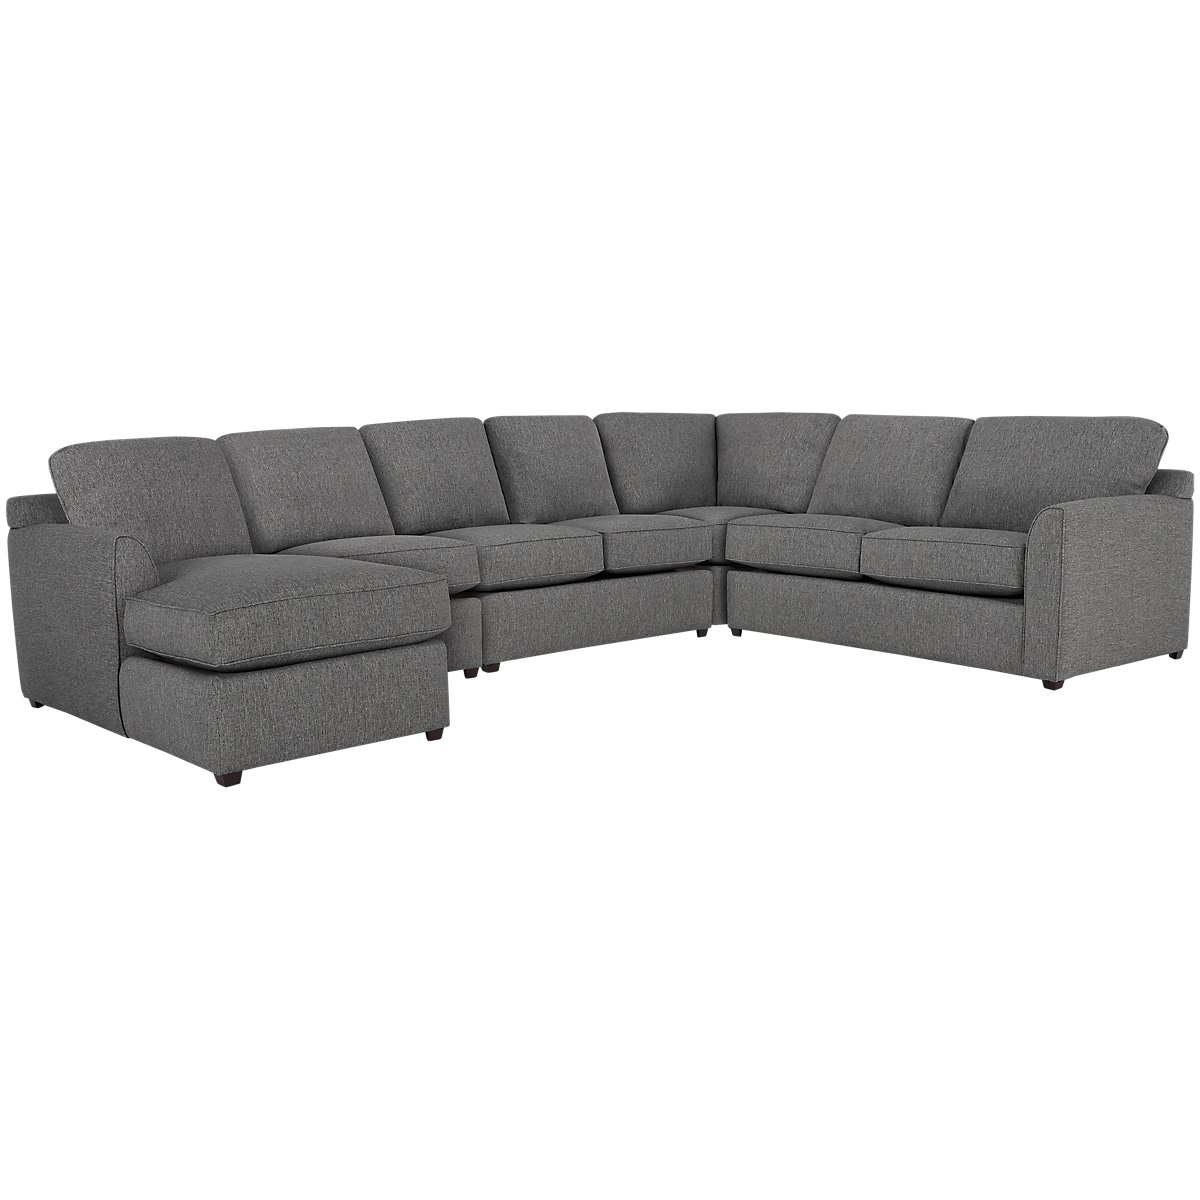 Asheville Gray Fabric Large Left Chaise Sectional